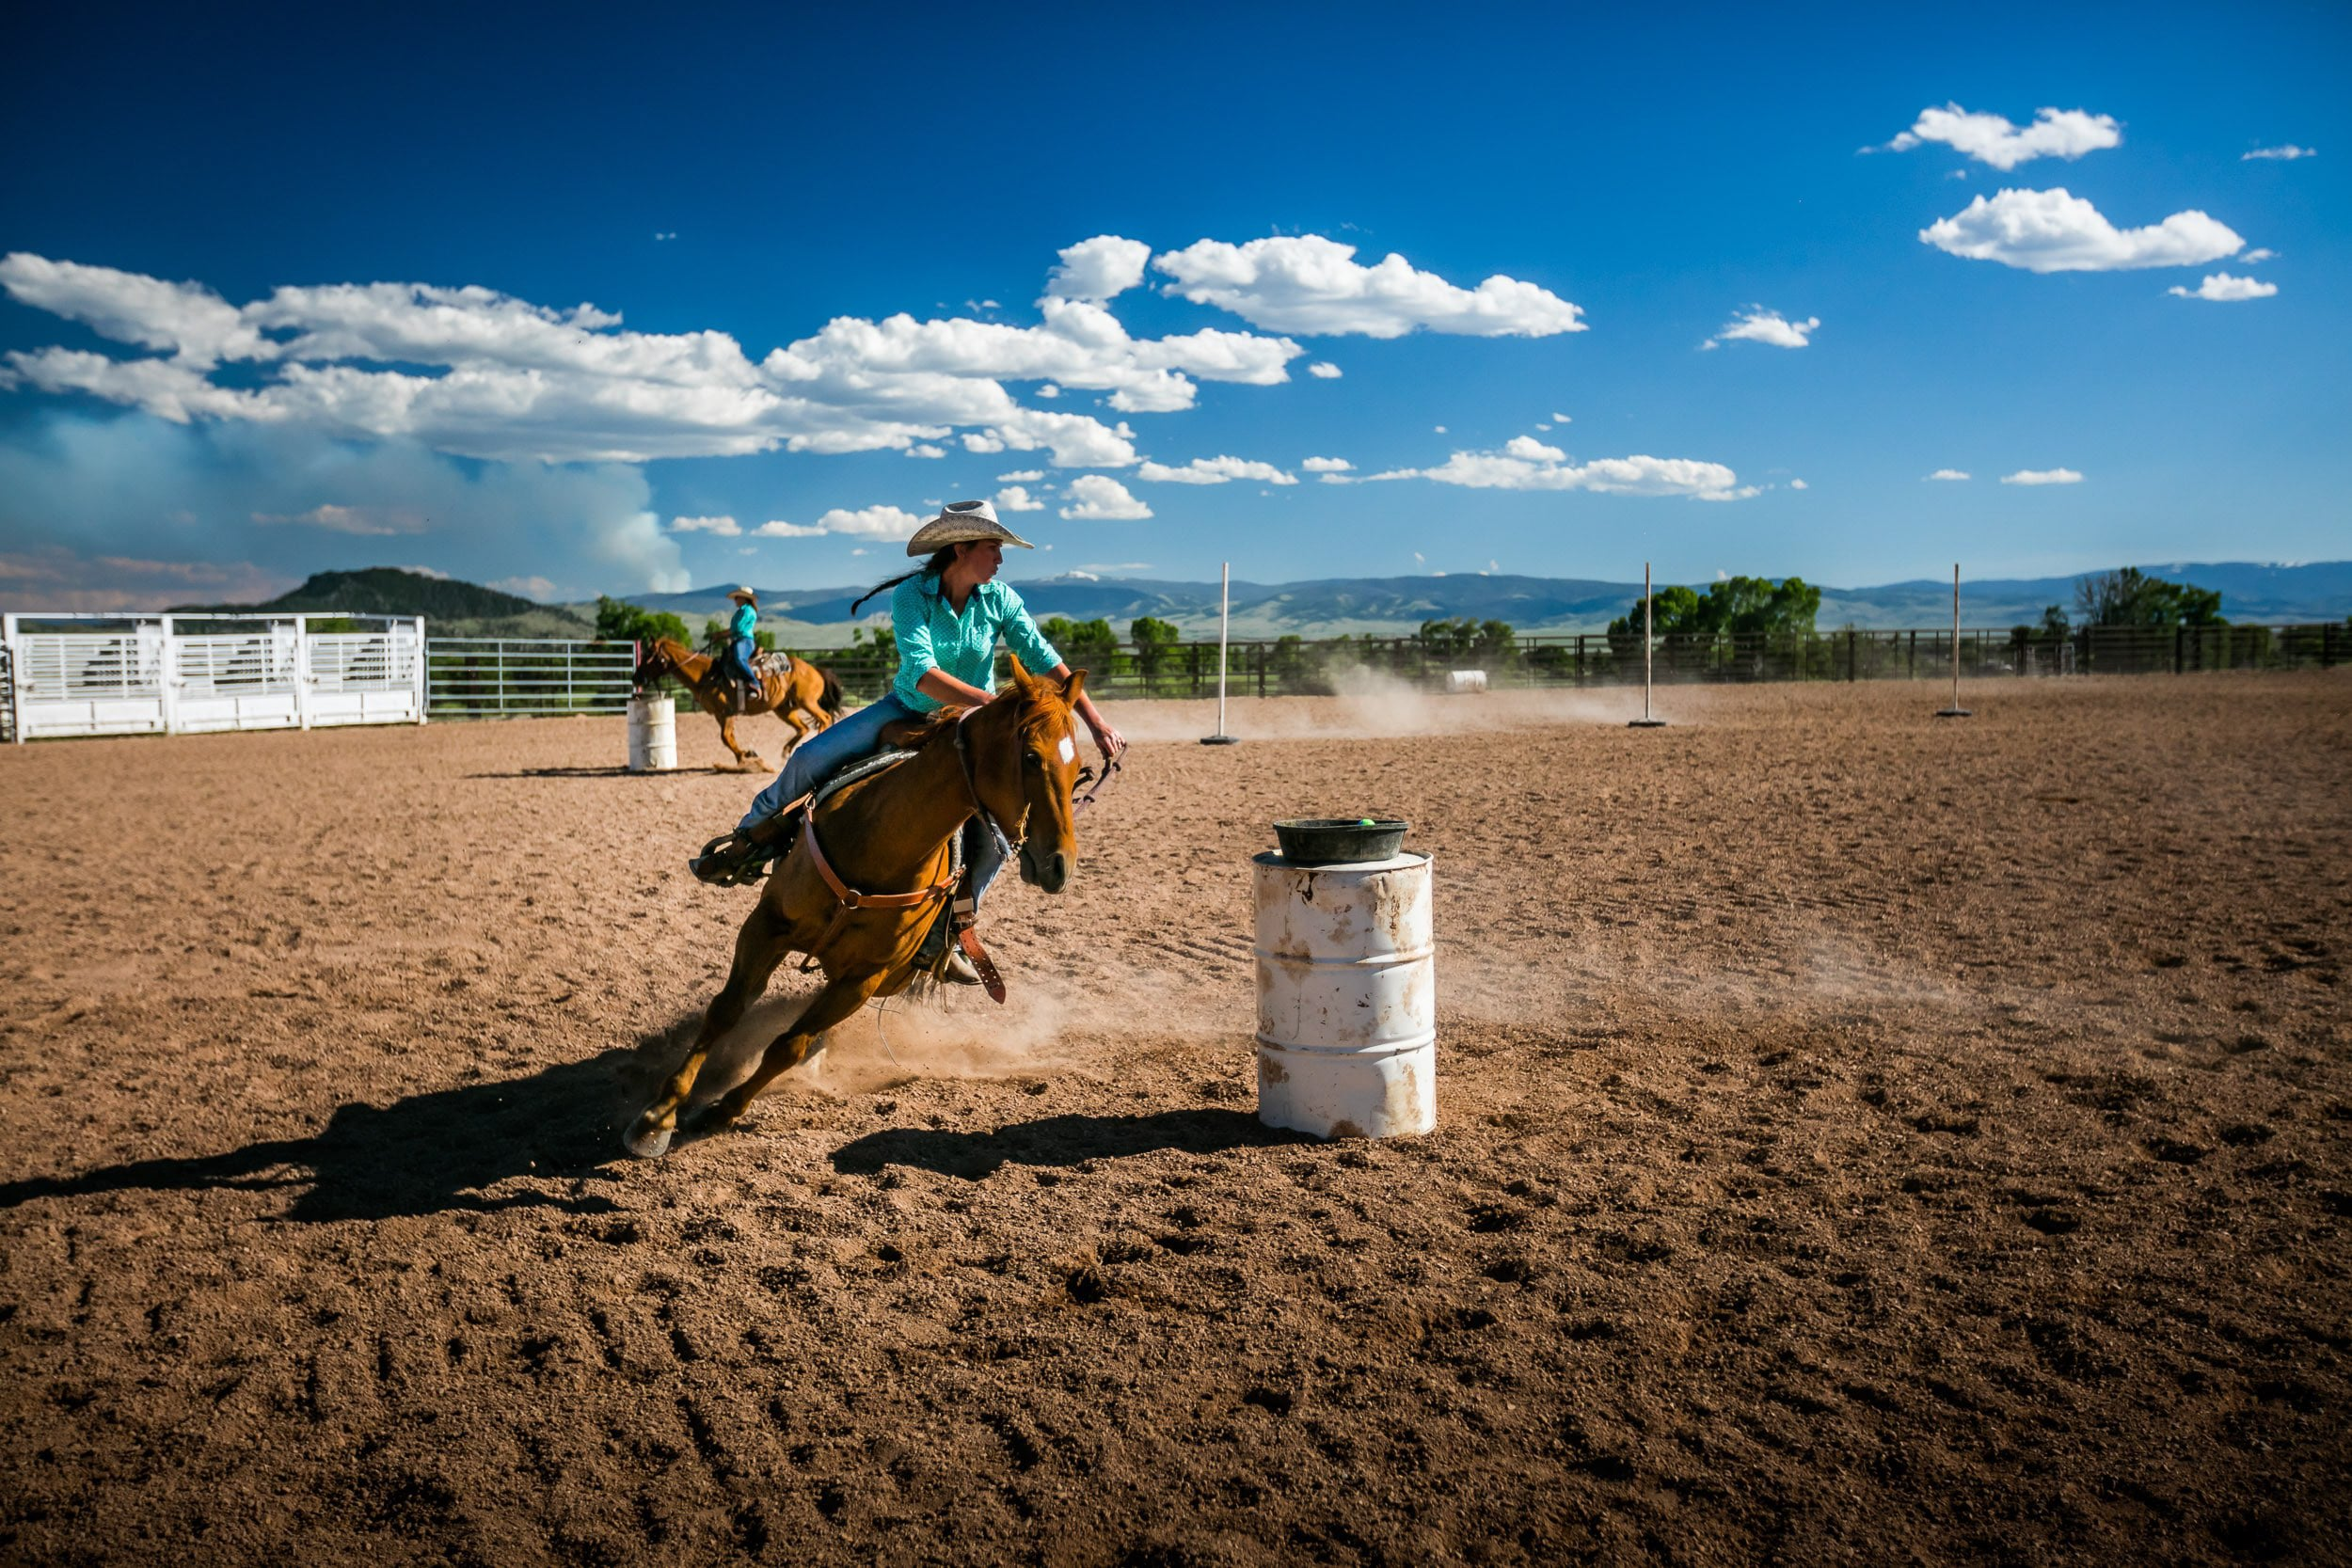 A person testing his skills in a barrel racing at Brush Creek Luxury Ranch